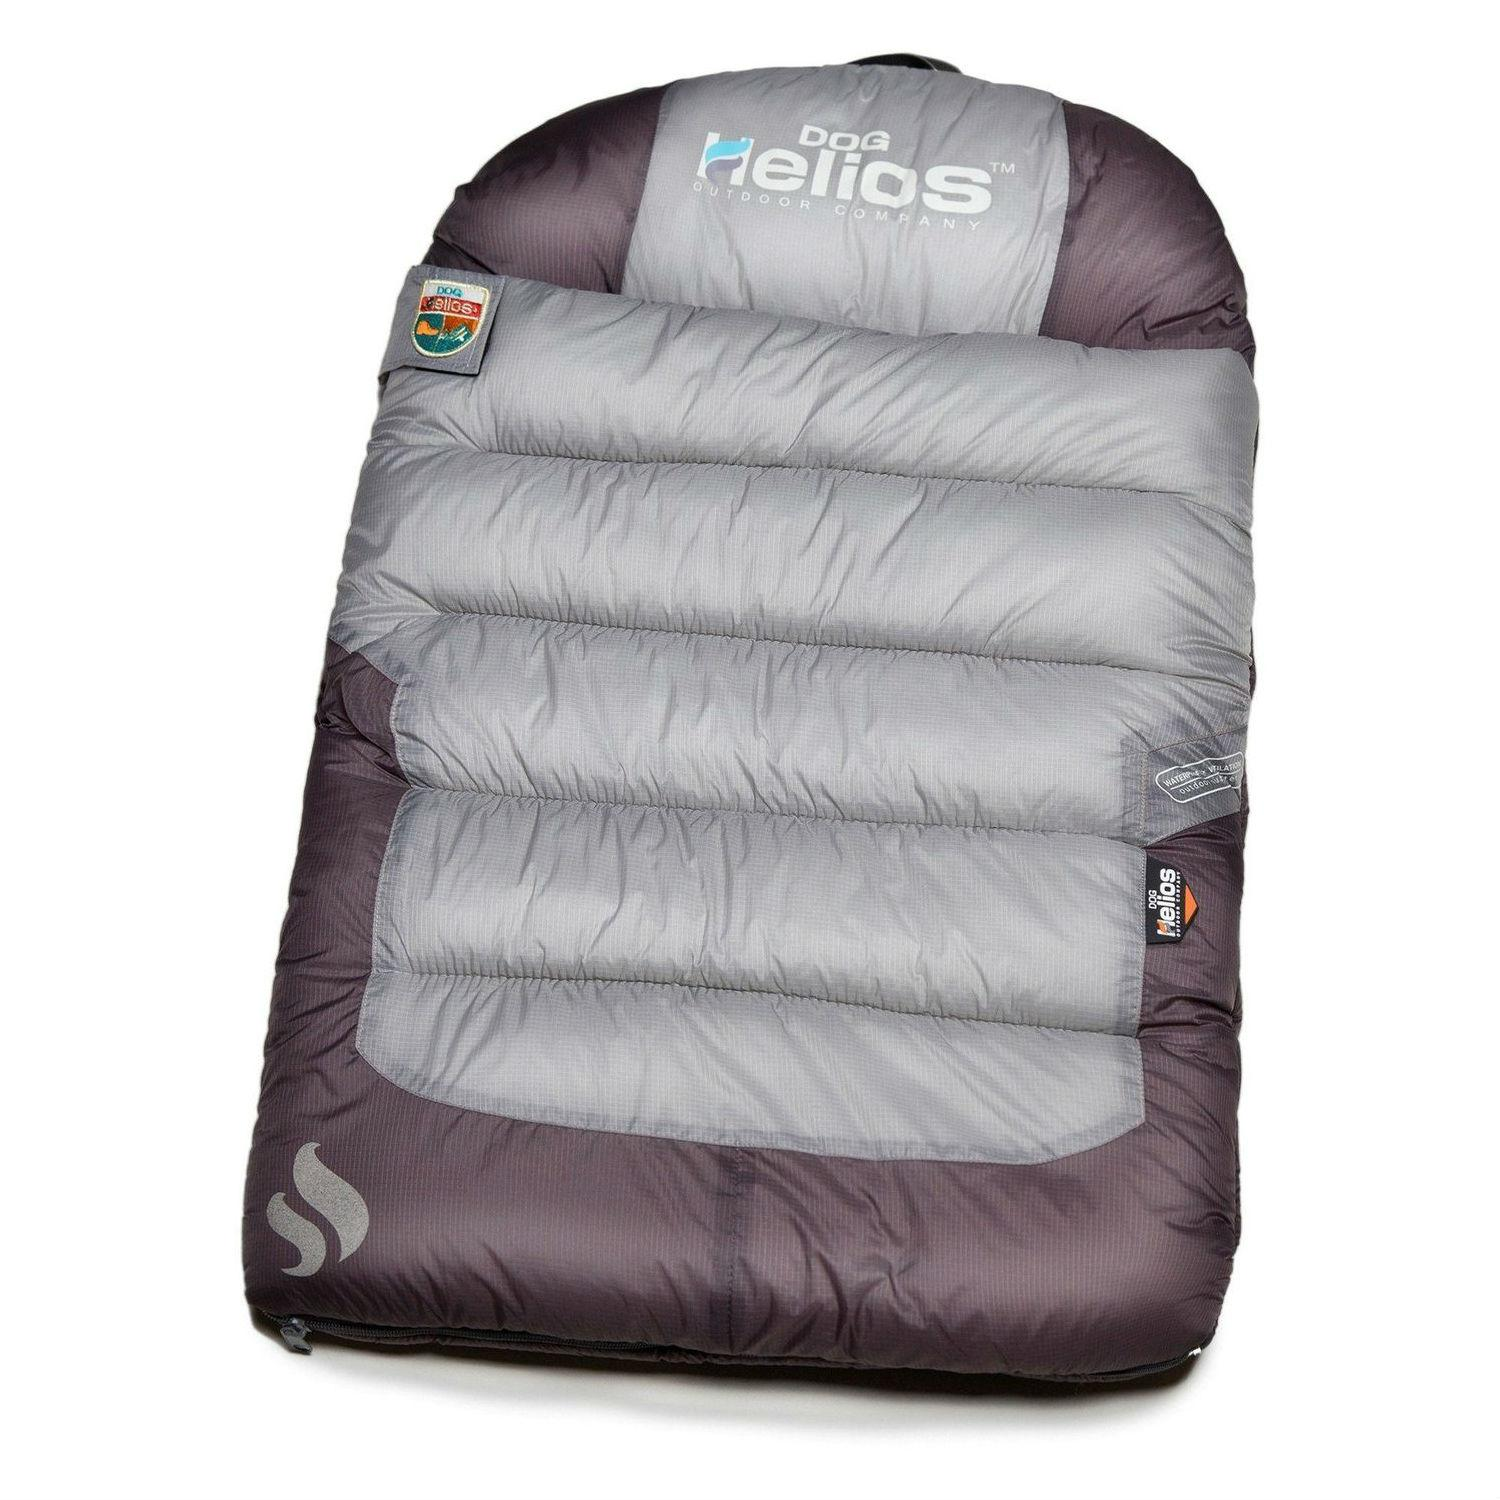 Pet Life Helios Trail-Barker Travel Camping Dog Bed - Gray